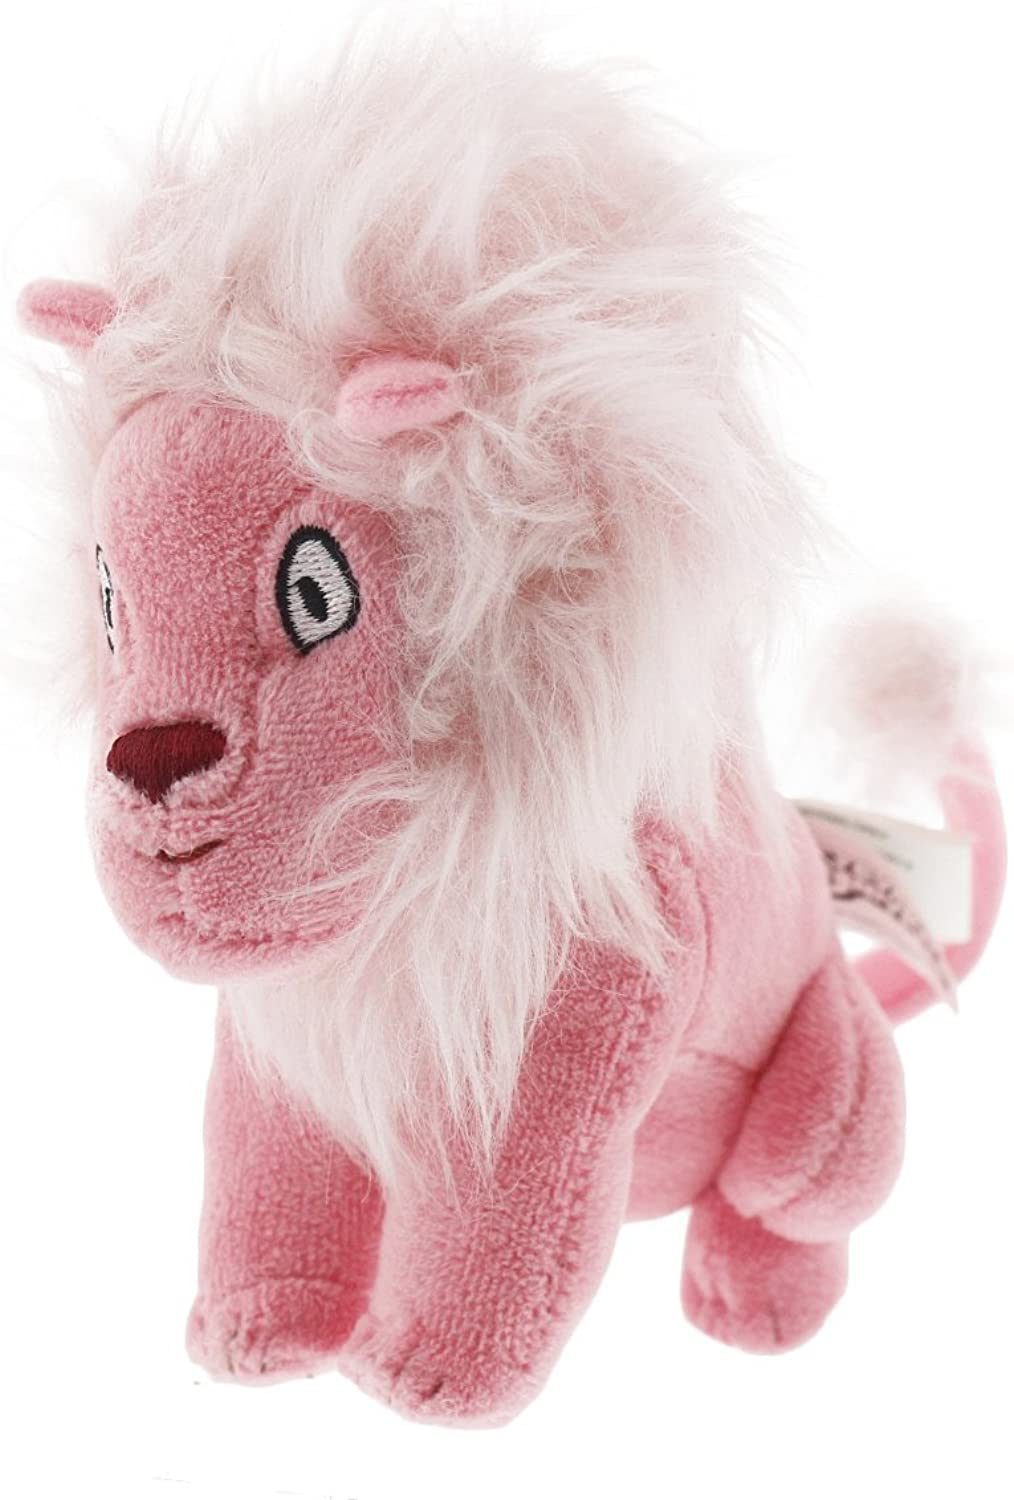 Official Steven Universe 5 Lion Plush Toy Figure